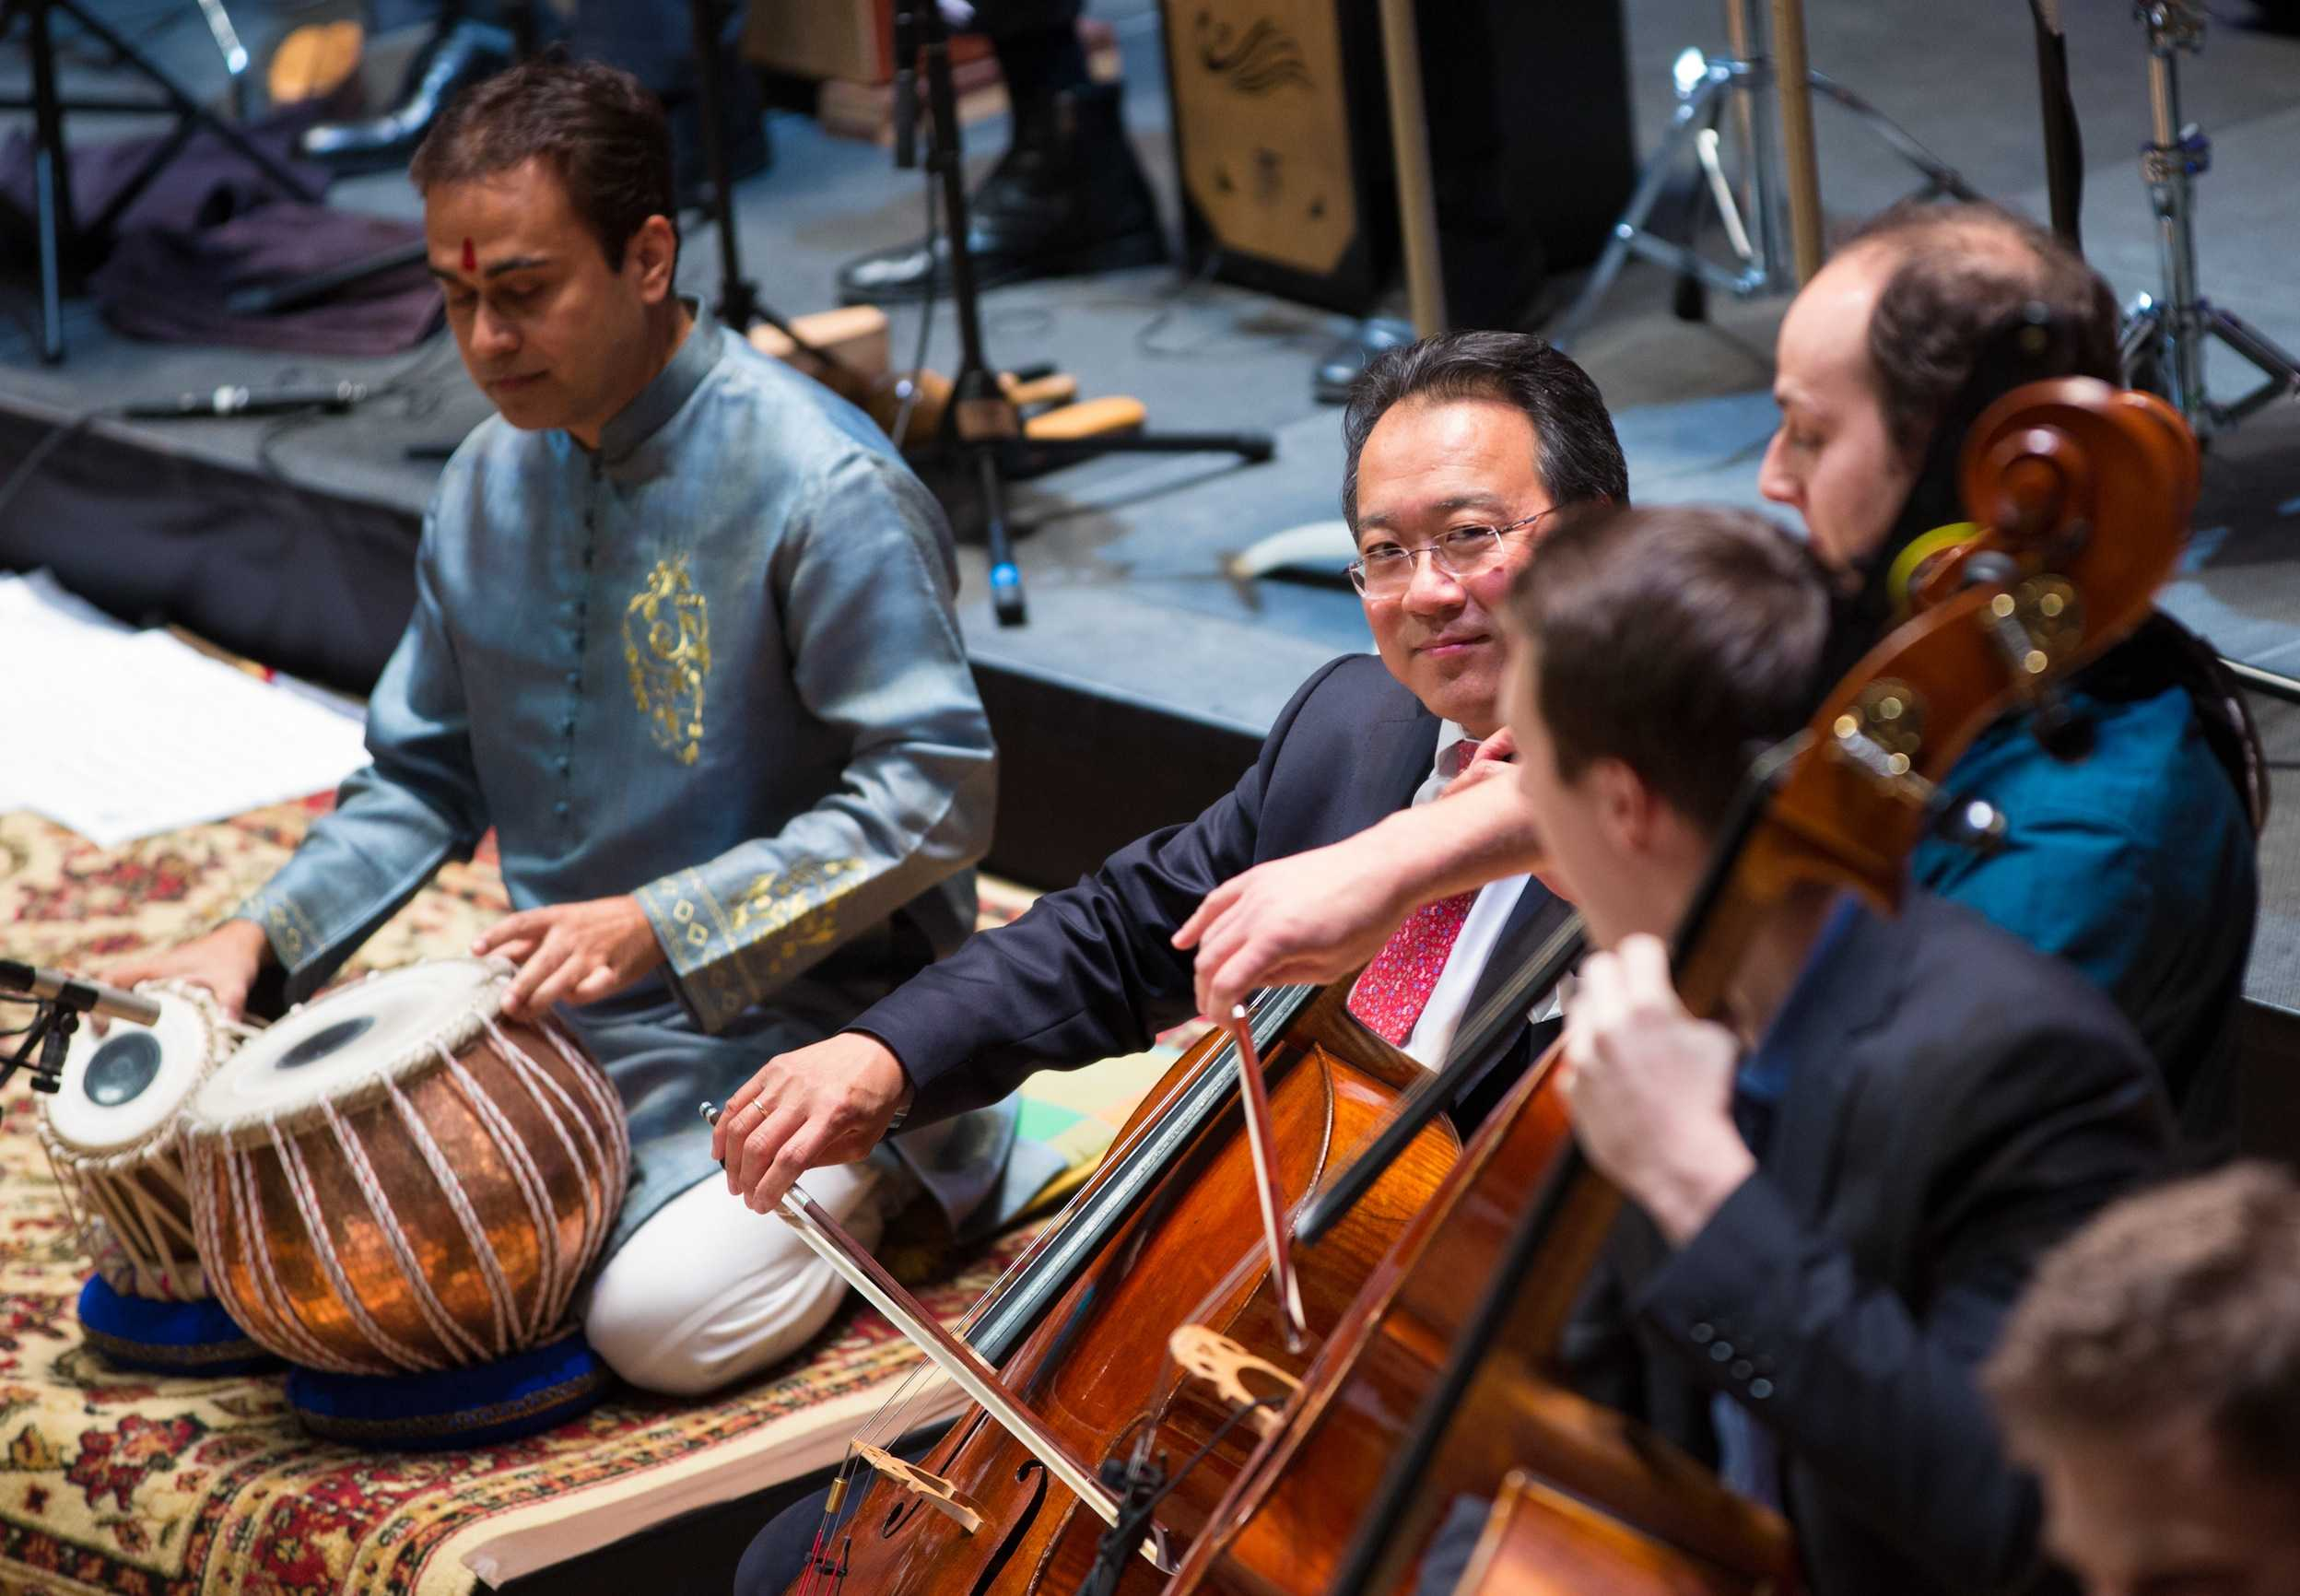 Cellist Yo-Yo Ma watches the other performers during a concert given by the Silk Road Ensemble at Symphony Hall in Boston on March 4, 2015.